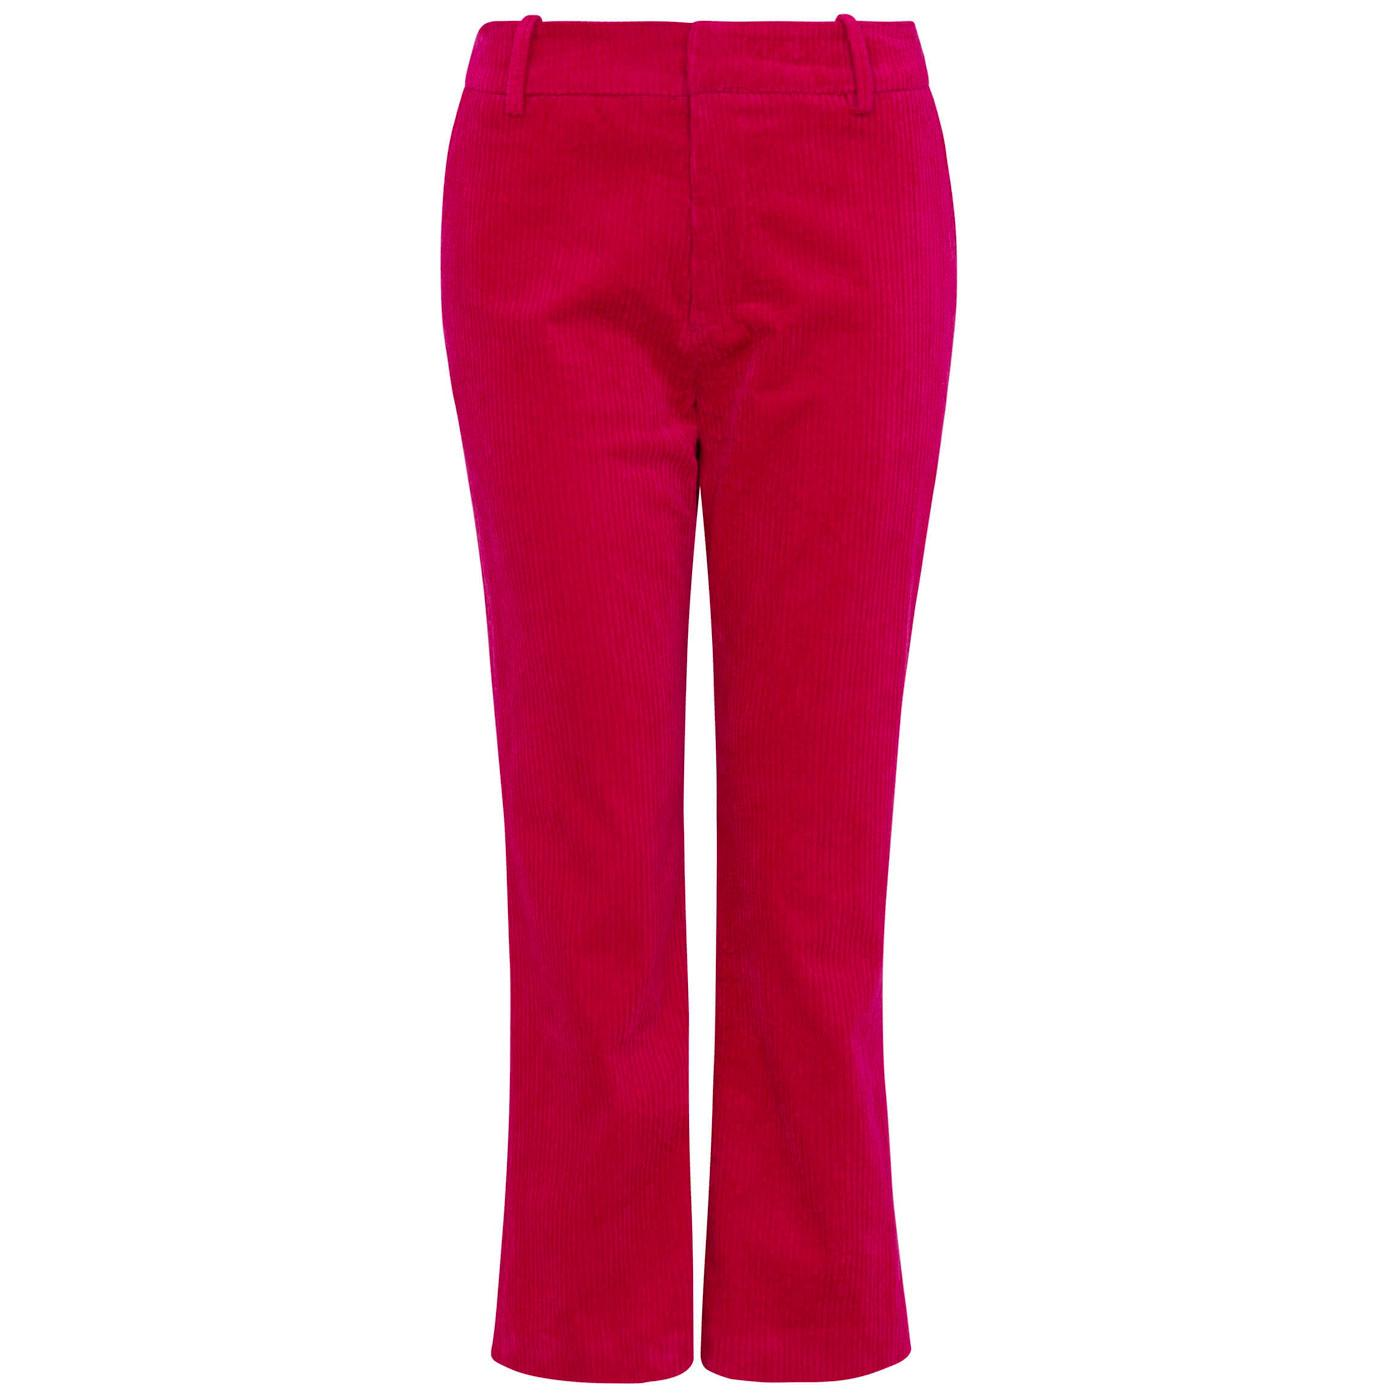 Beth EMILY & FIN Jumbo Cord Trousers Lipstick Pink